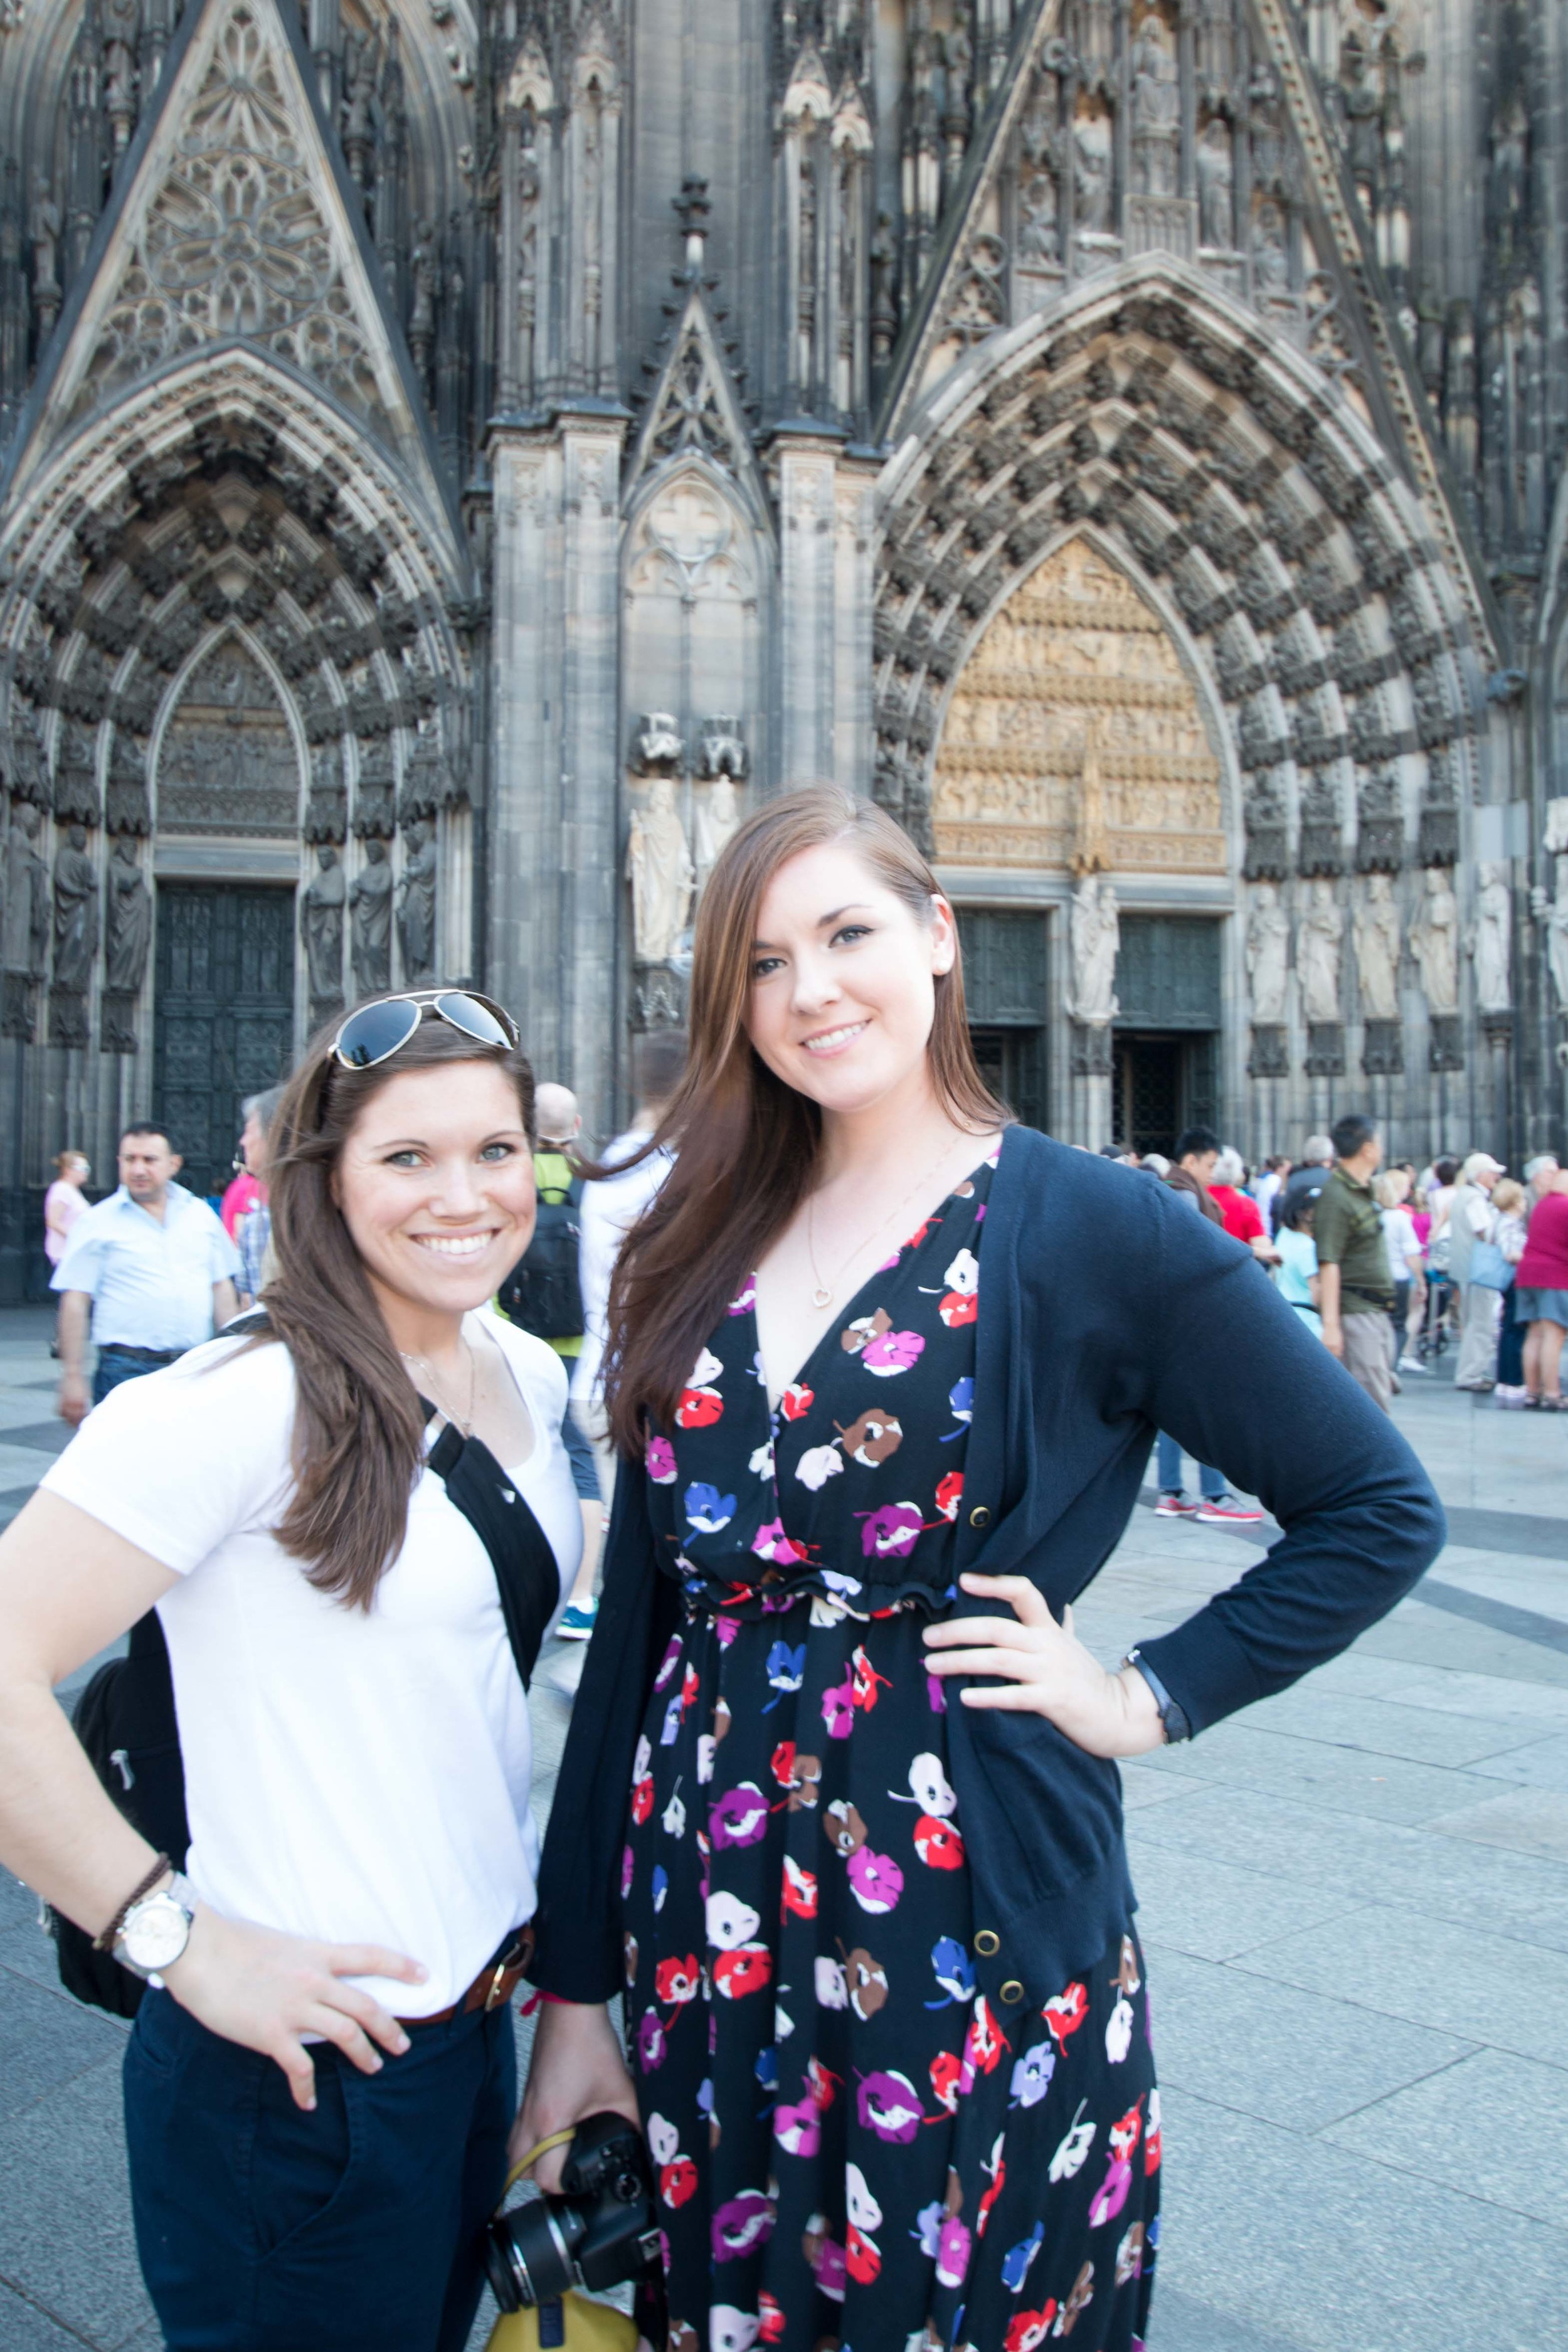 Kate and Chelsea in front of the Dom